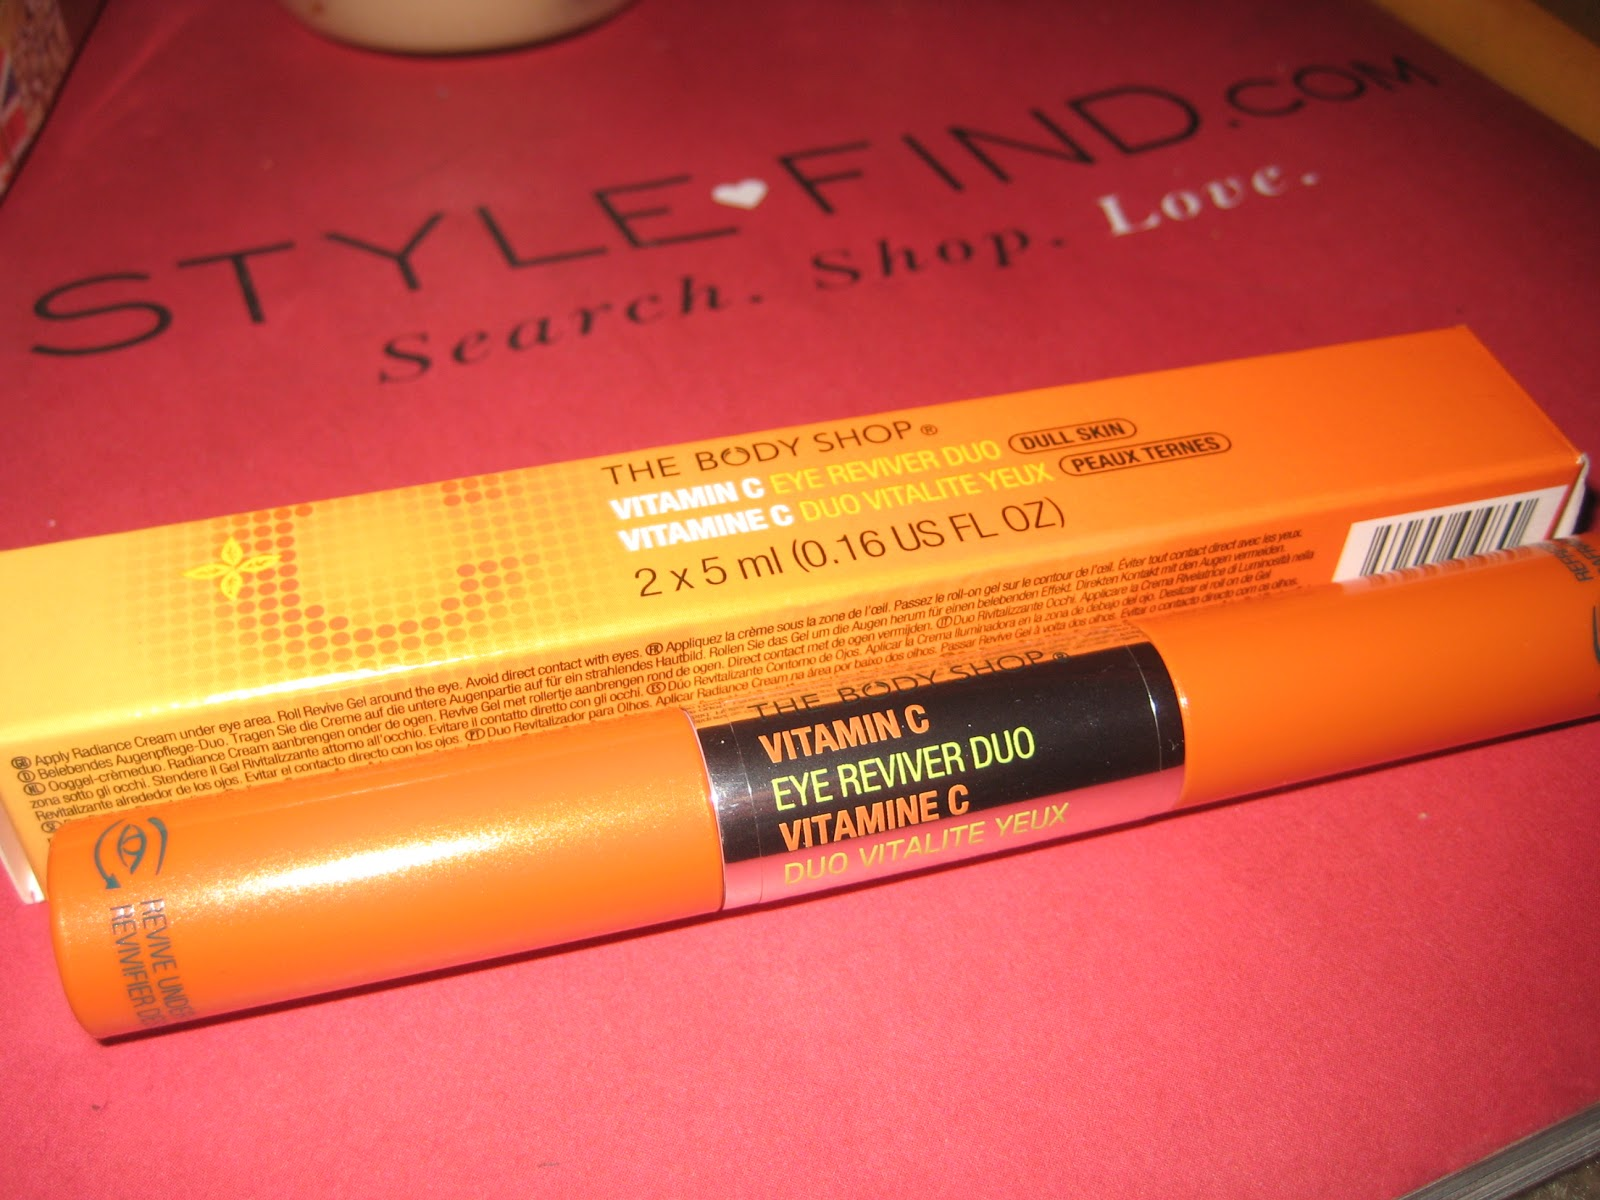 Vitamin c Eye Reviver Duo c in The Eye Reviver Duo